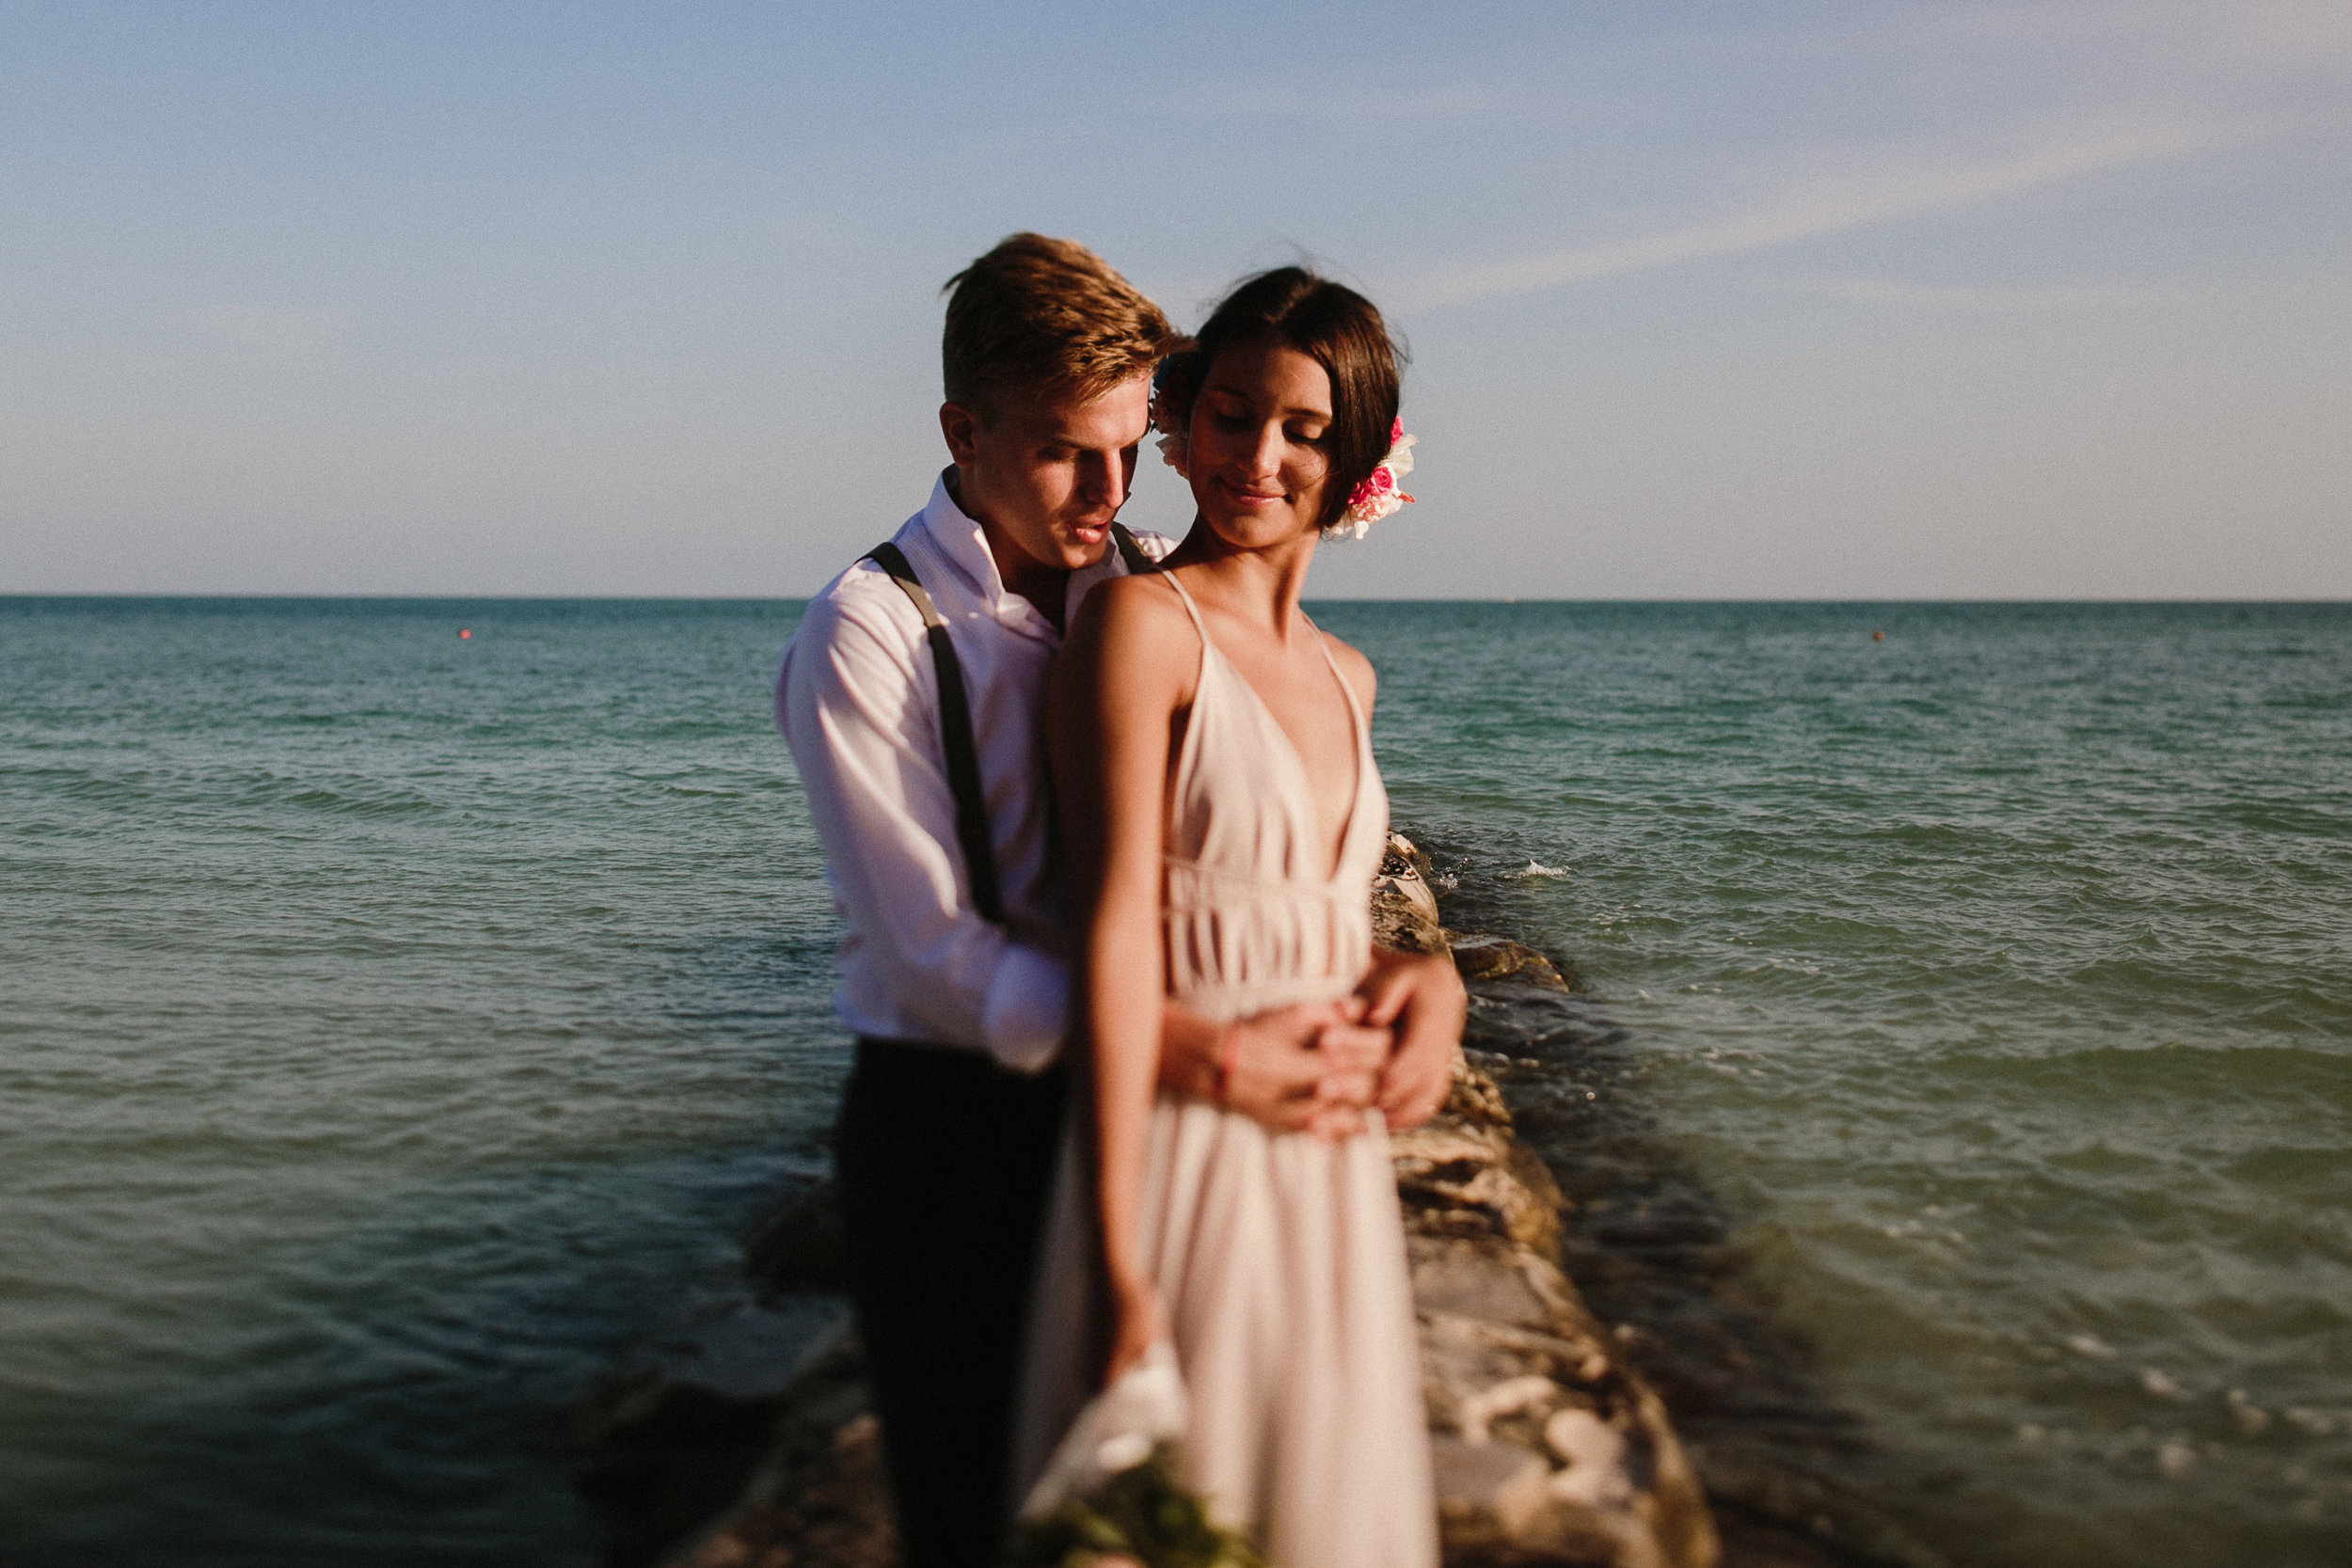 alfonso_flores_destination_wedding_photographer_holbox_nomada_workshop-210.jpg